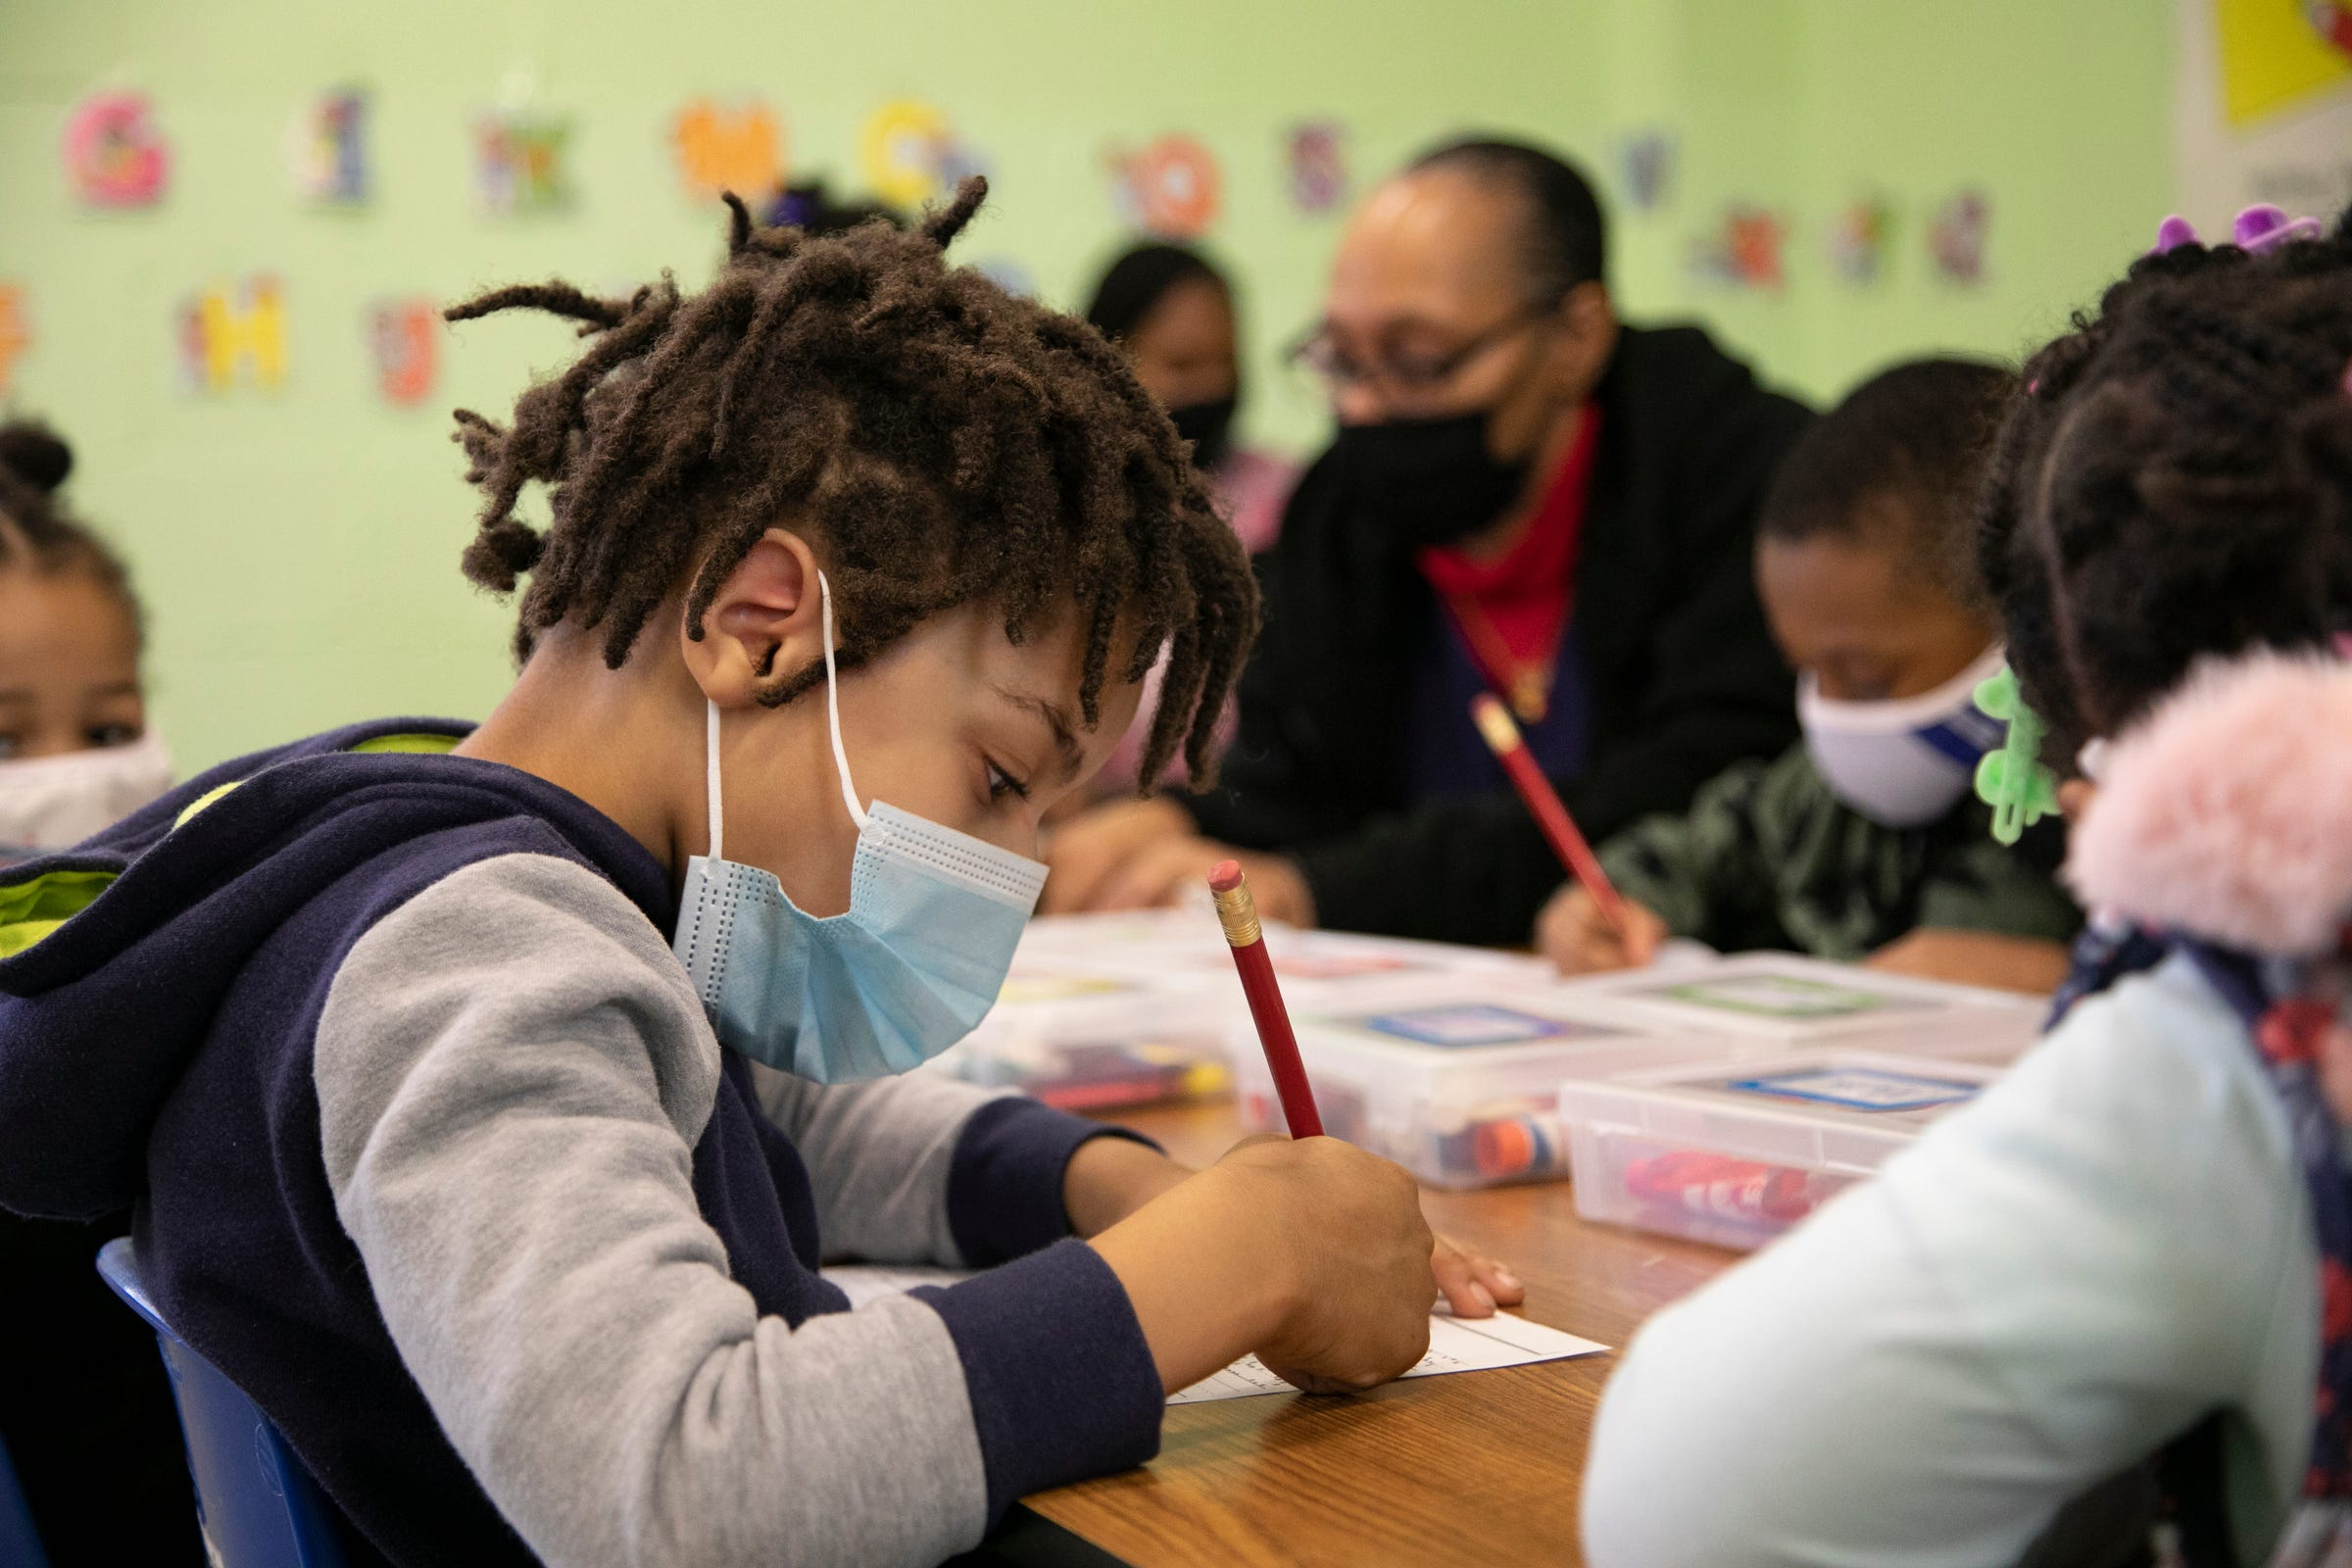 Corey Jones, 4, of Detroit, focuses on writing his name during class at the Franklin Wright Settlements that turns 140 this year. The organization is all about helping Detroiters with basic life, social, and family needs. We visit the early education arm of the organization in Detroit on Mar. 11, 2021.